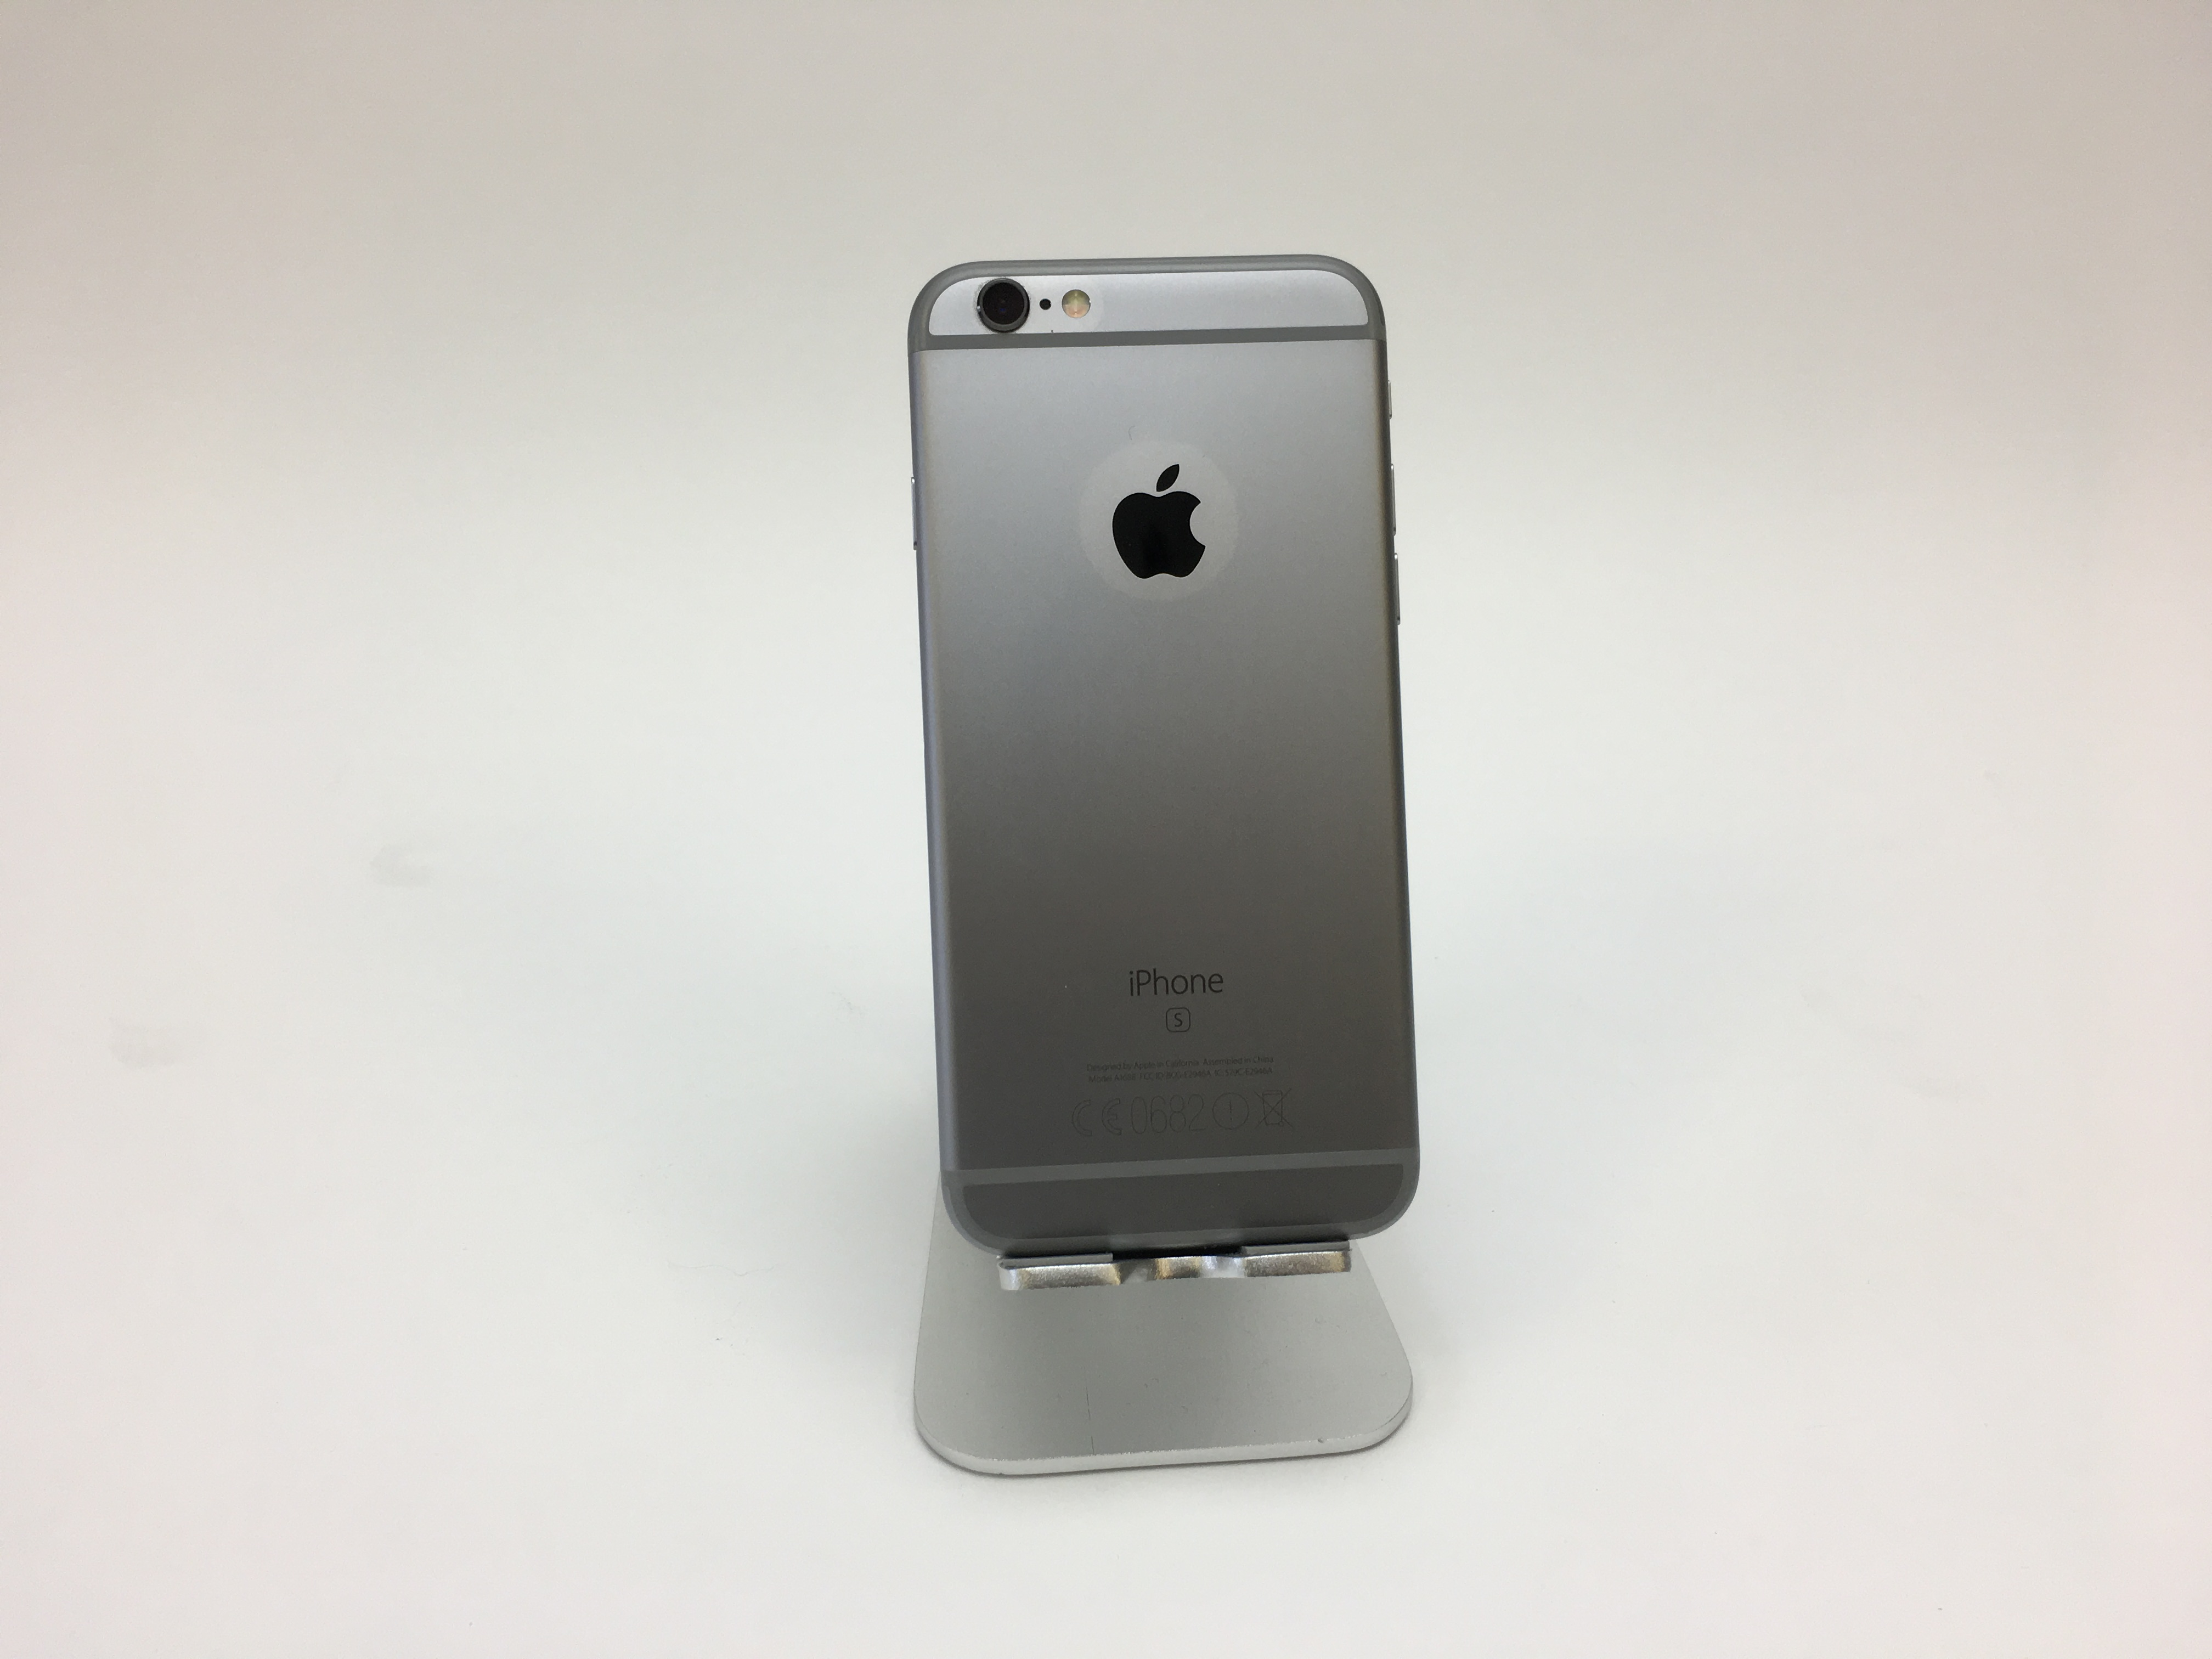 iPhone 6S, 16 GB, Space Grey, Product age: 30 months, image 2